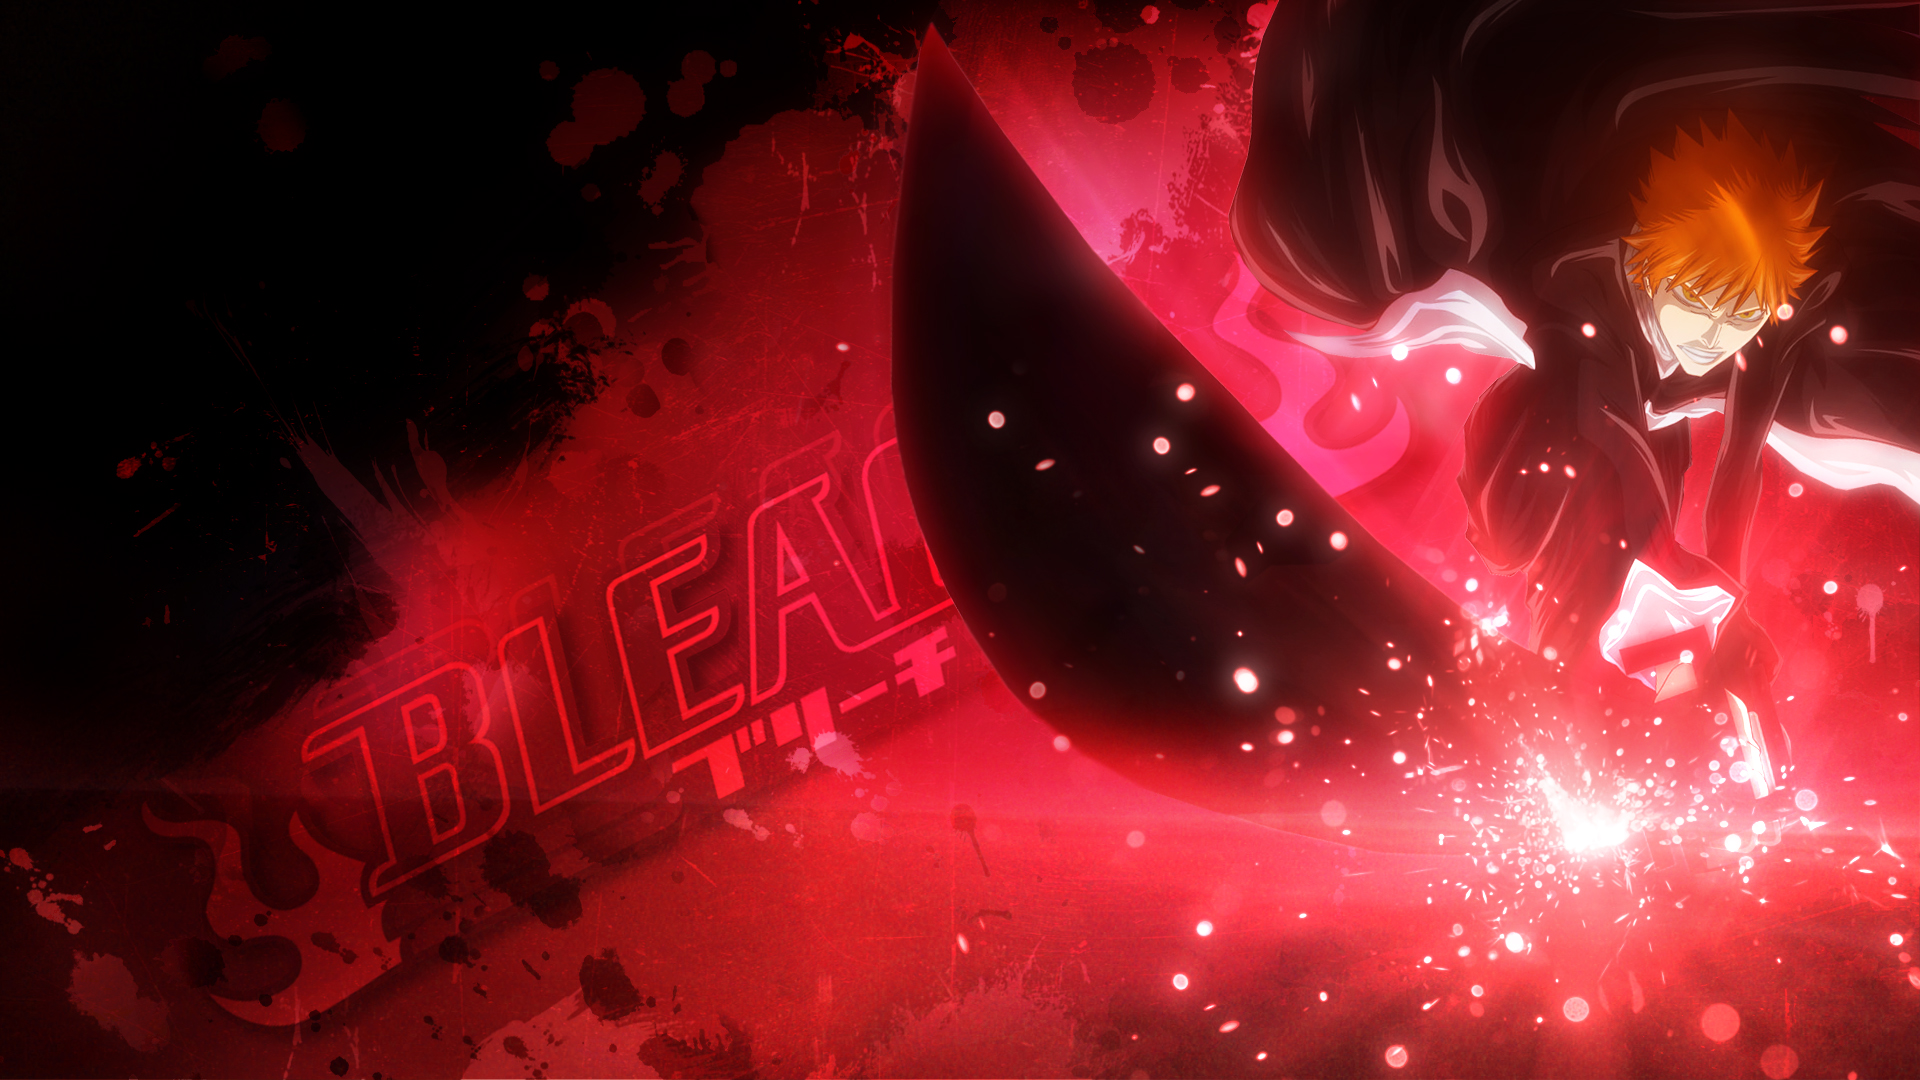 Bleach wallpaper 14